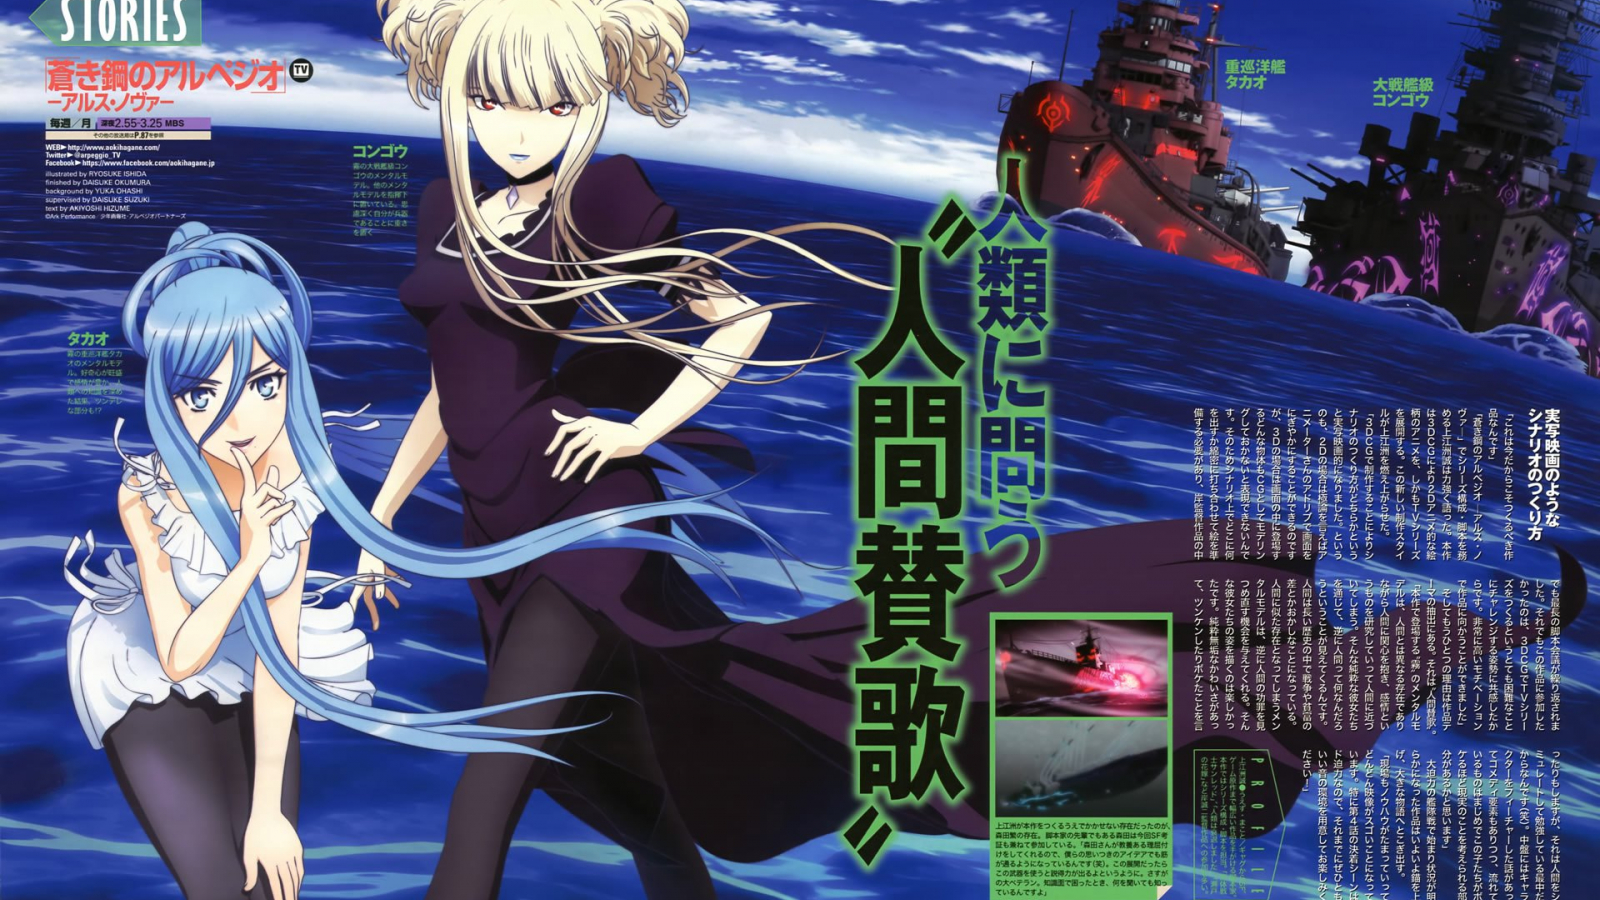 Free Download Arpeggio Of Blue Steel Anime Wallpaper Anime Desu